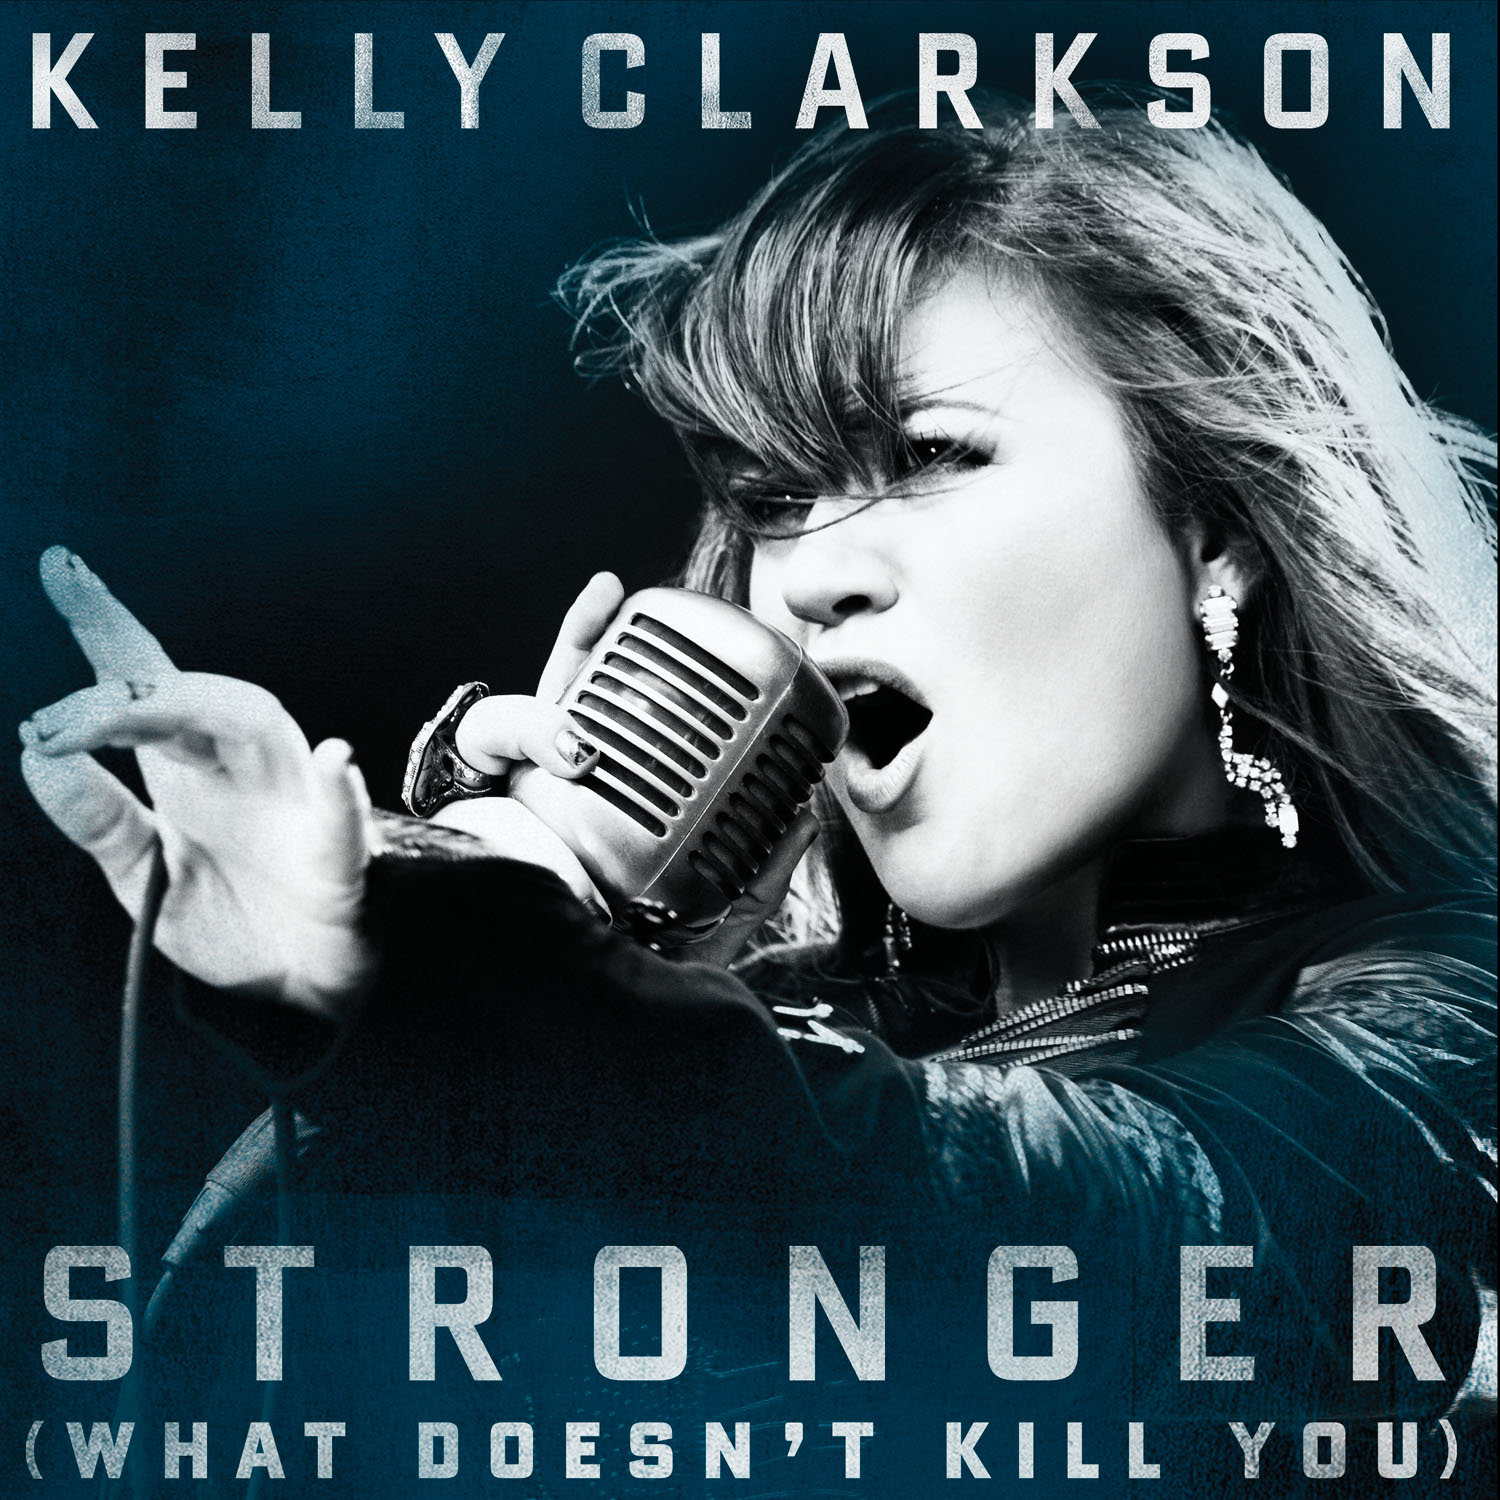 http://3.bp.blogspot.com/-ynUxhCzO1Jw/UN9SIfQj6AI/AAAAAAAAHzs/bSfLMWSCEX4/s1600/Kelly-Clarkson-What-Doesnt-Kill-You.jpg